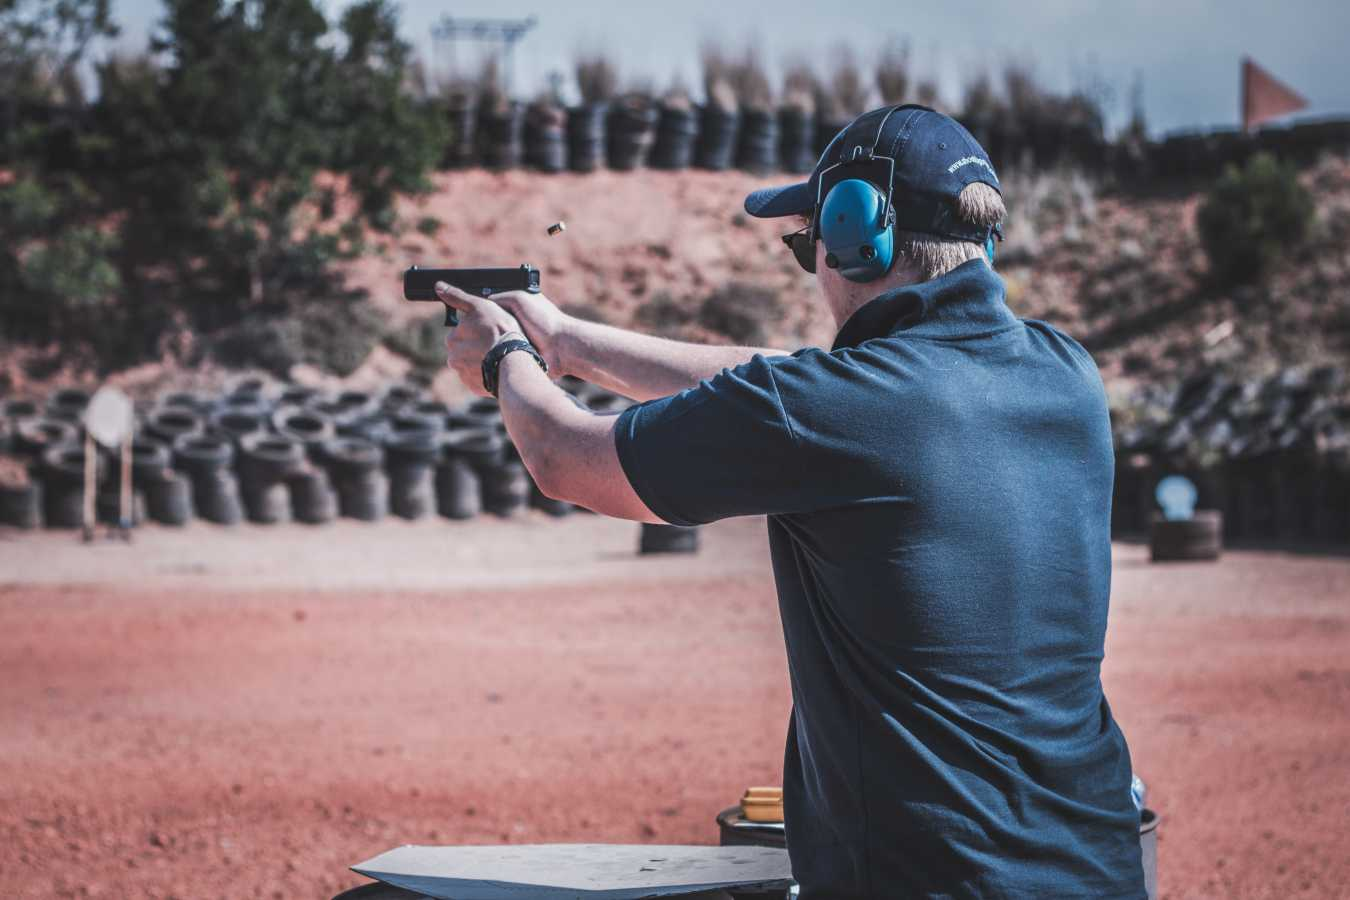 gun range action shot ppc for online gun shops